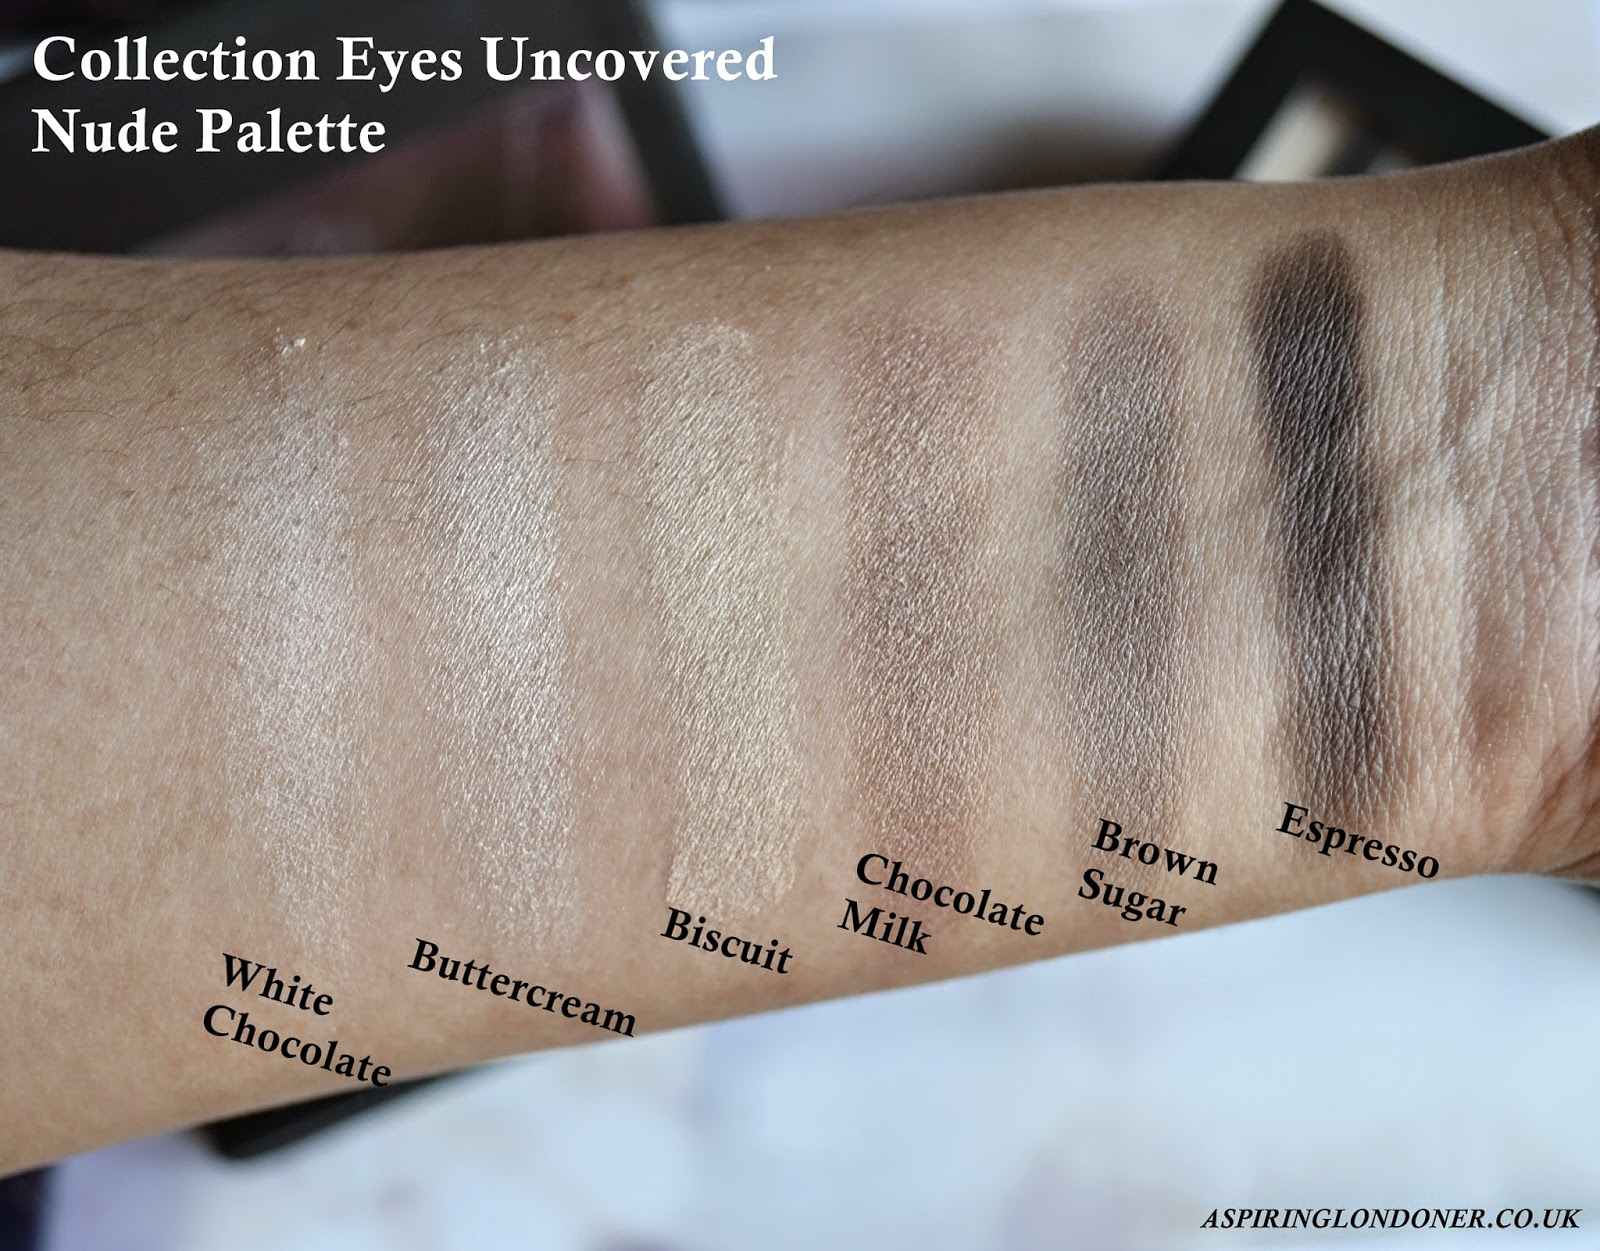 Collection Eyes Uncovered Nude Palette Swatches - Aspiring Londoner